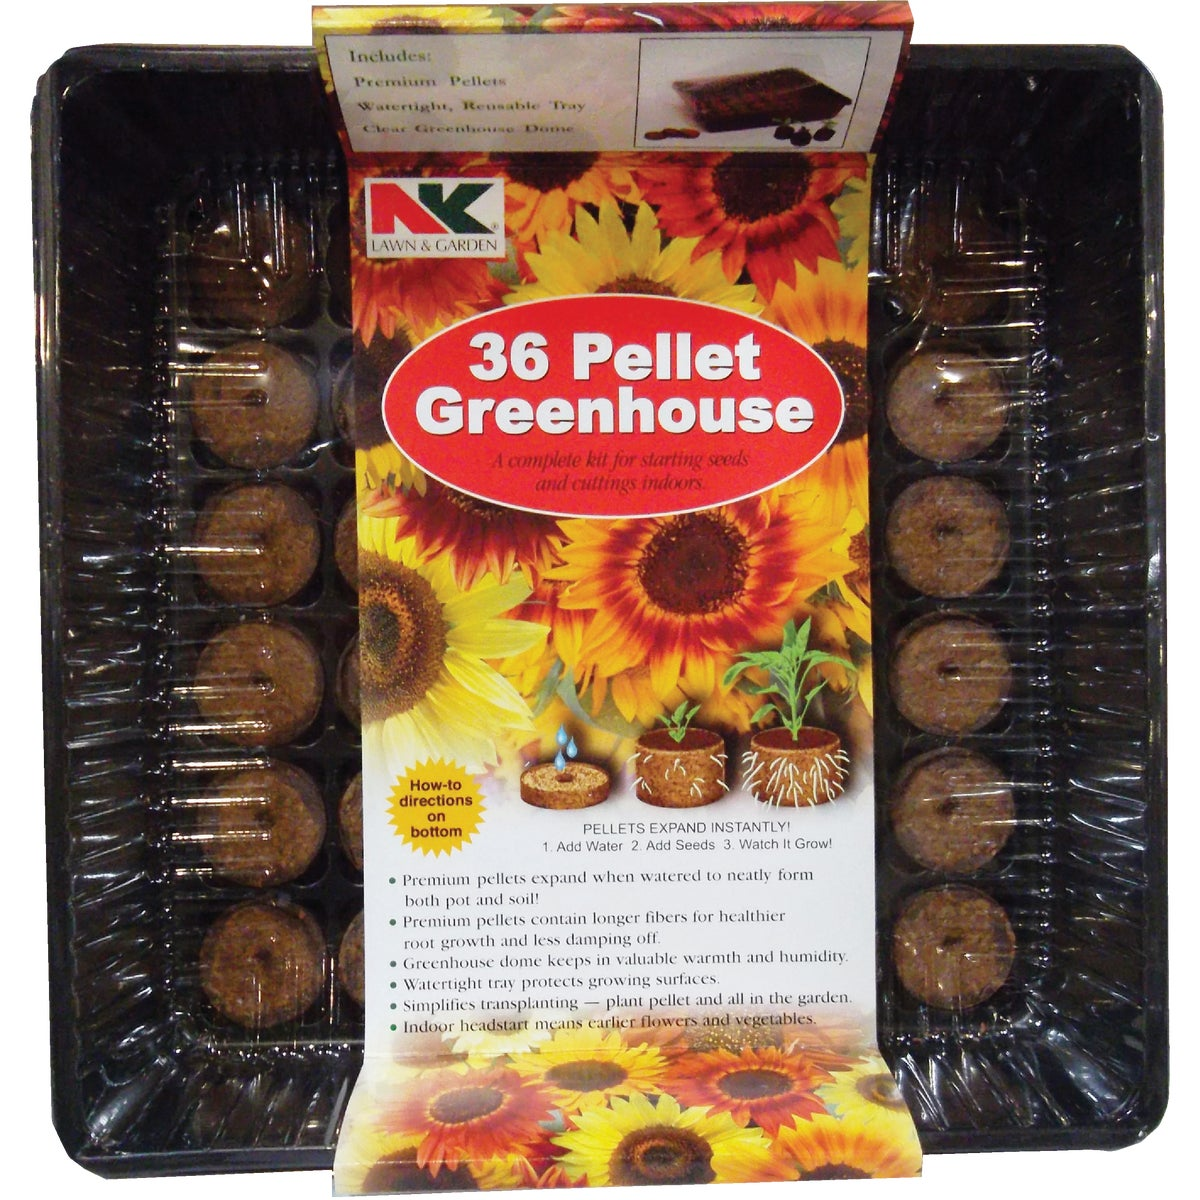 36 CELL GREENHOUSE - PO36 by Plantation Products